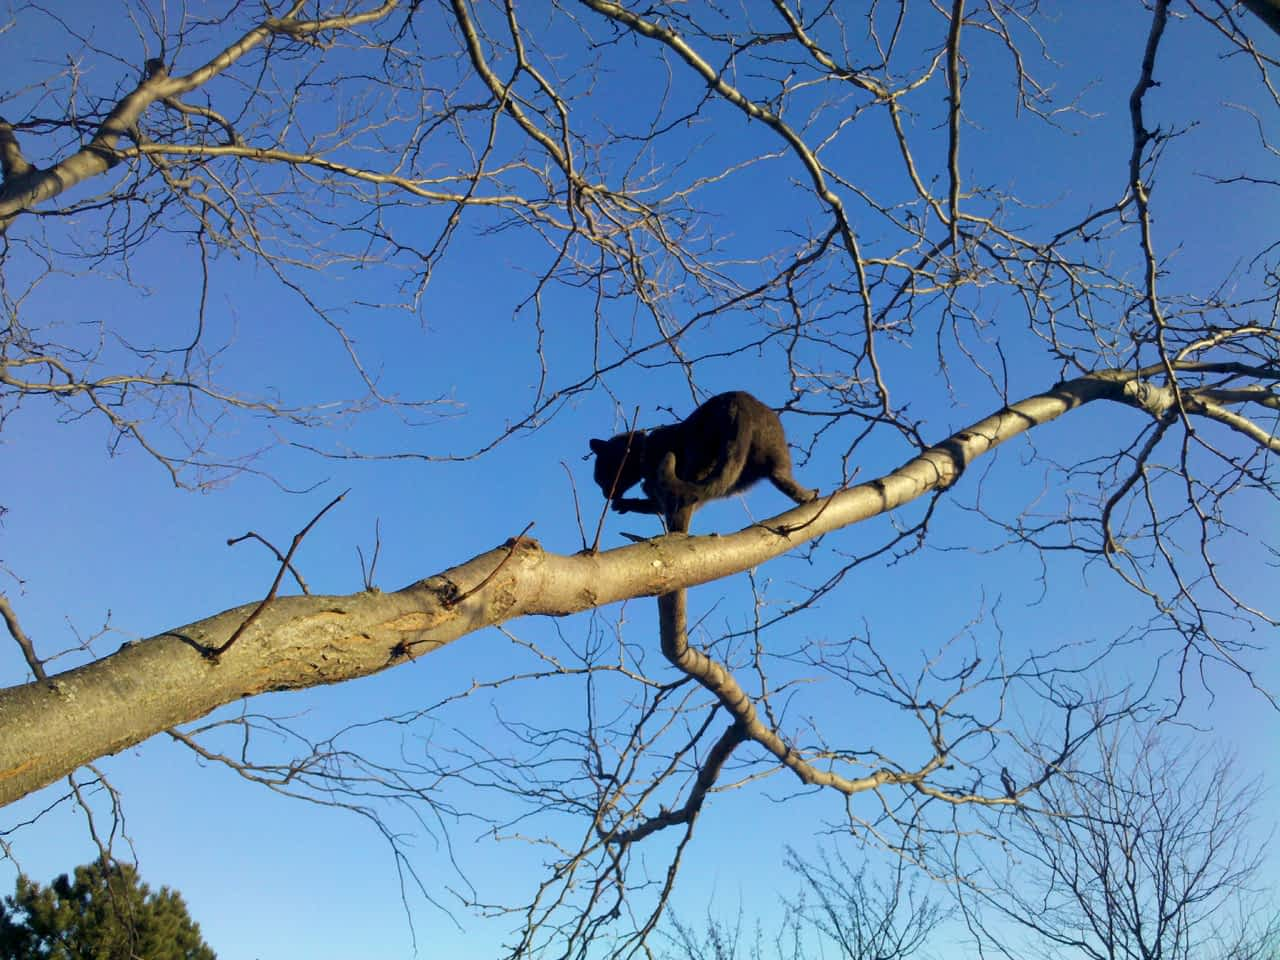 Buddy in a tree